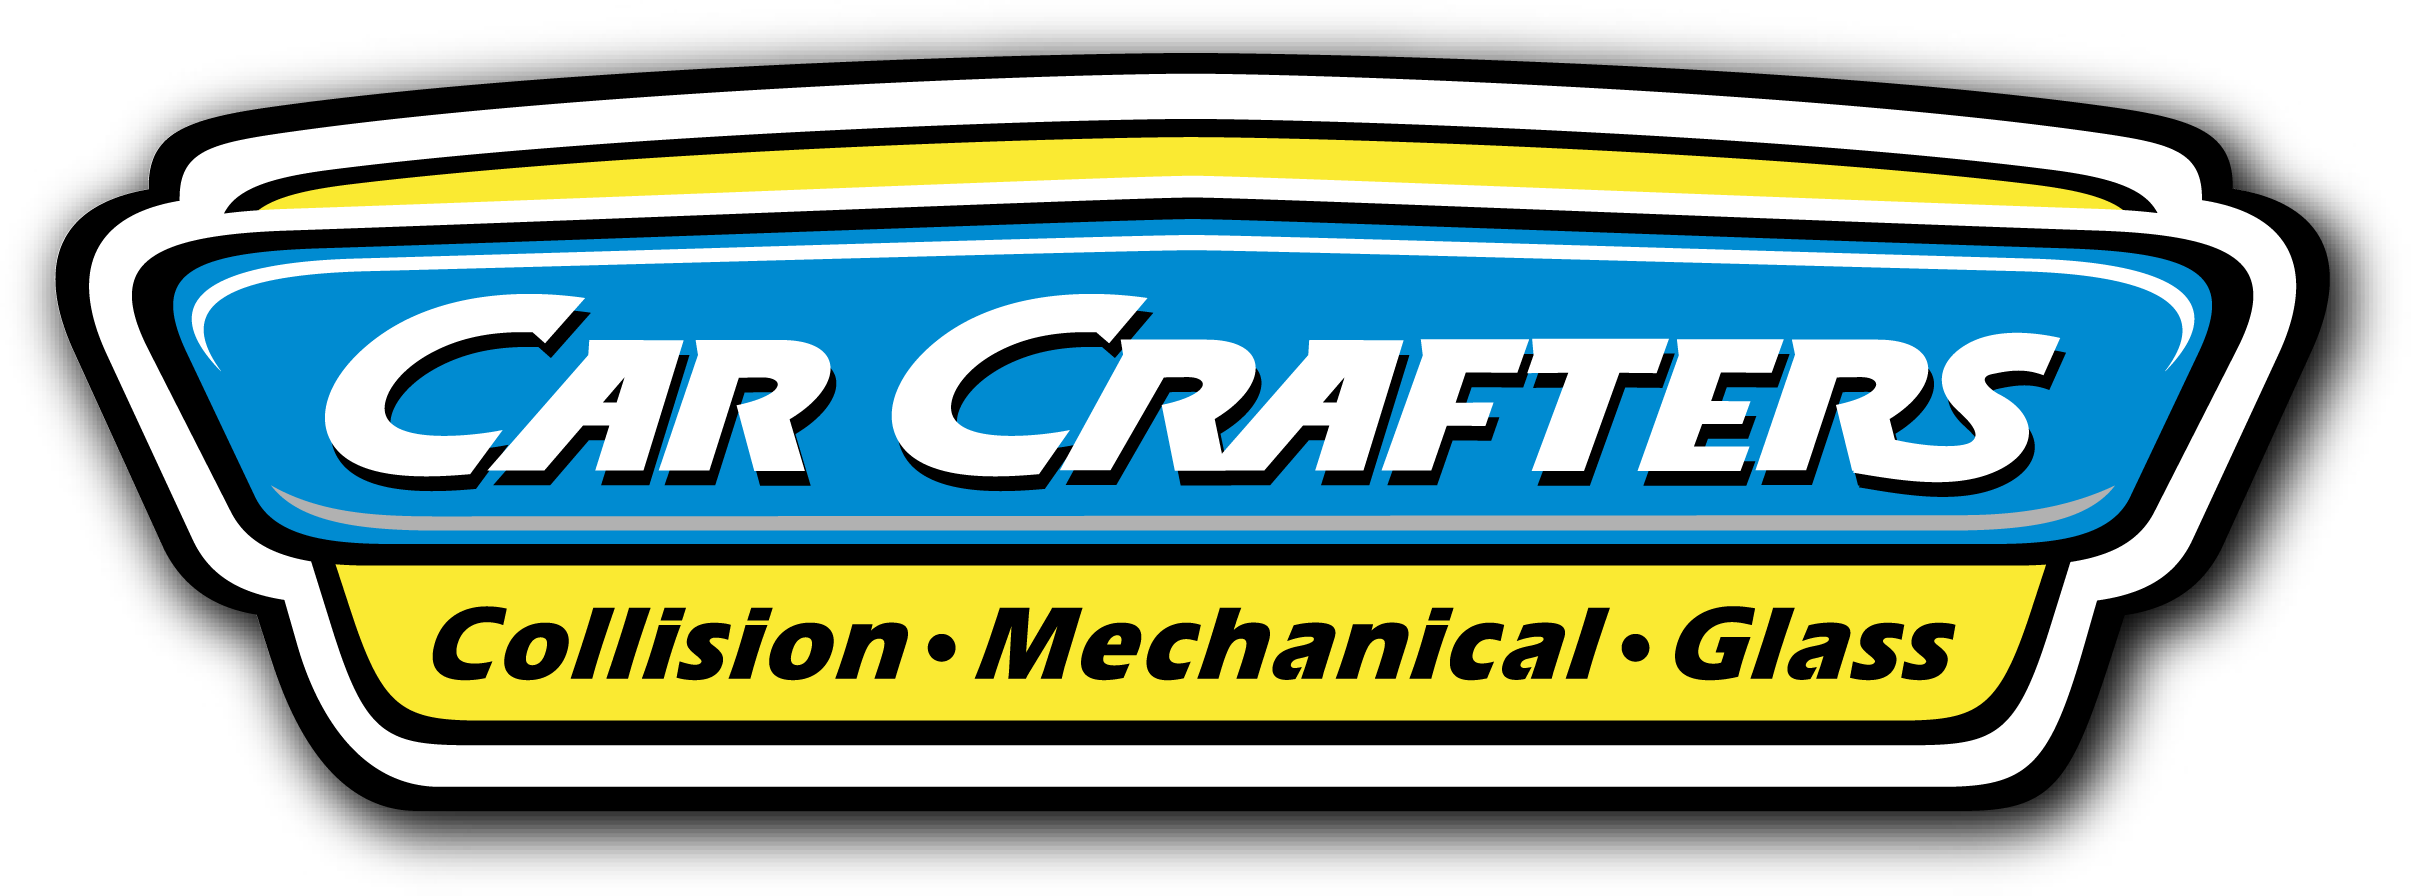 Car Crafters logo